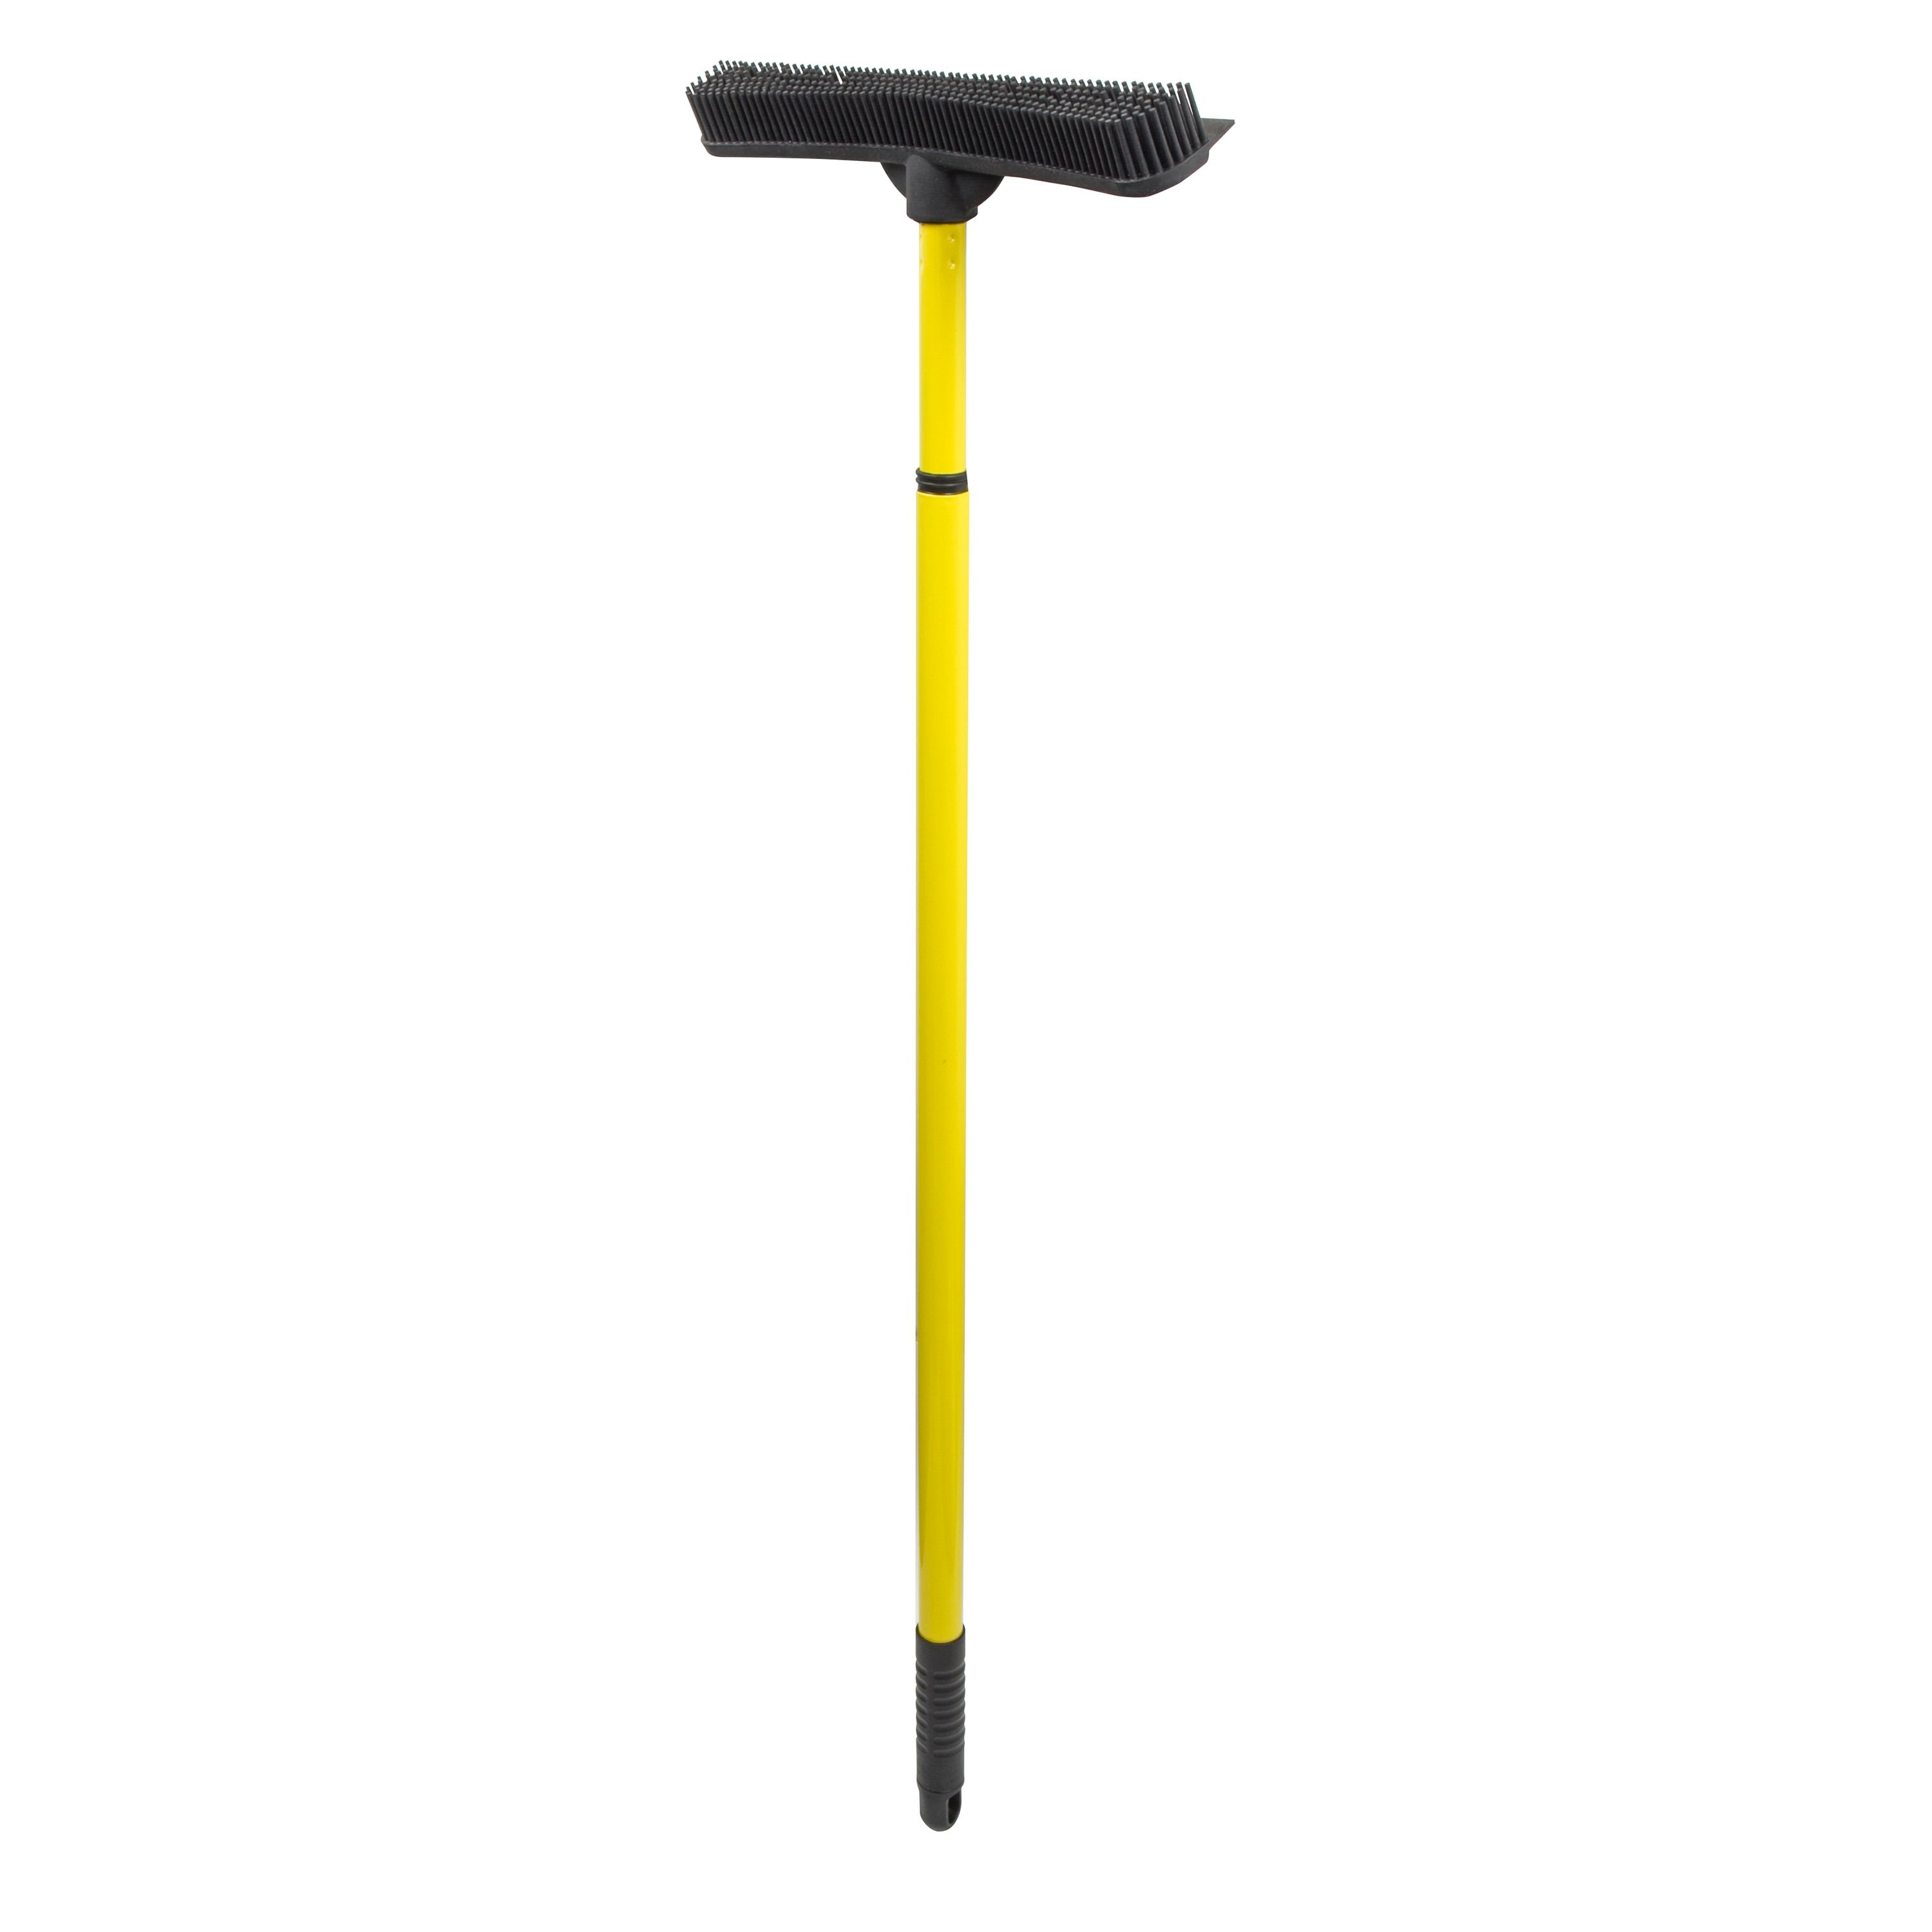 A rubber broom with a built-in squeegee on the end of a telescoping handle